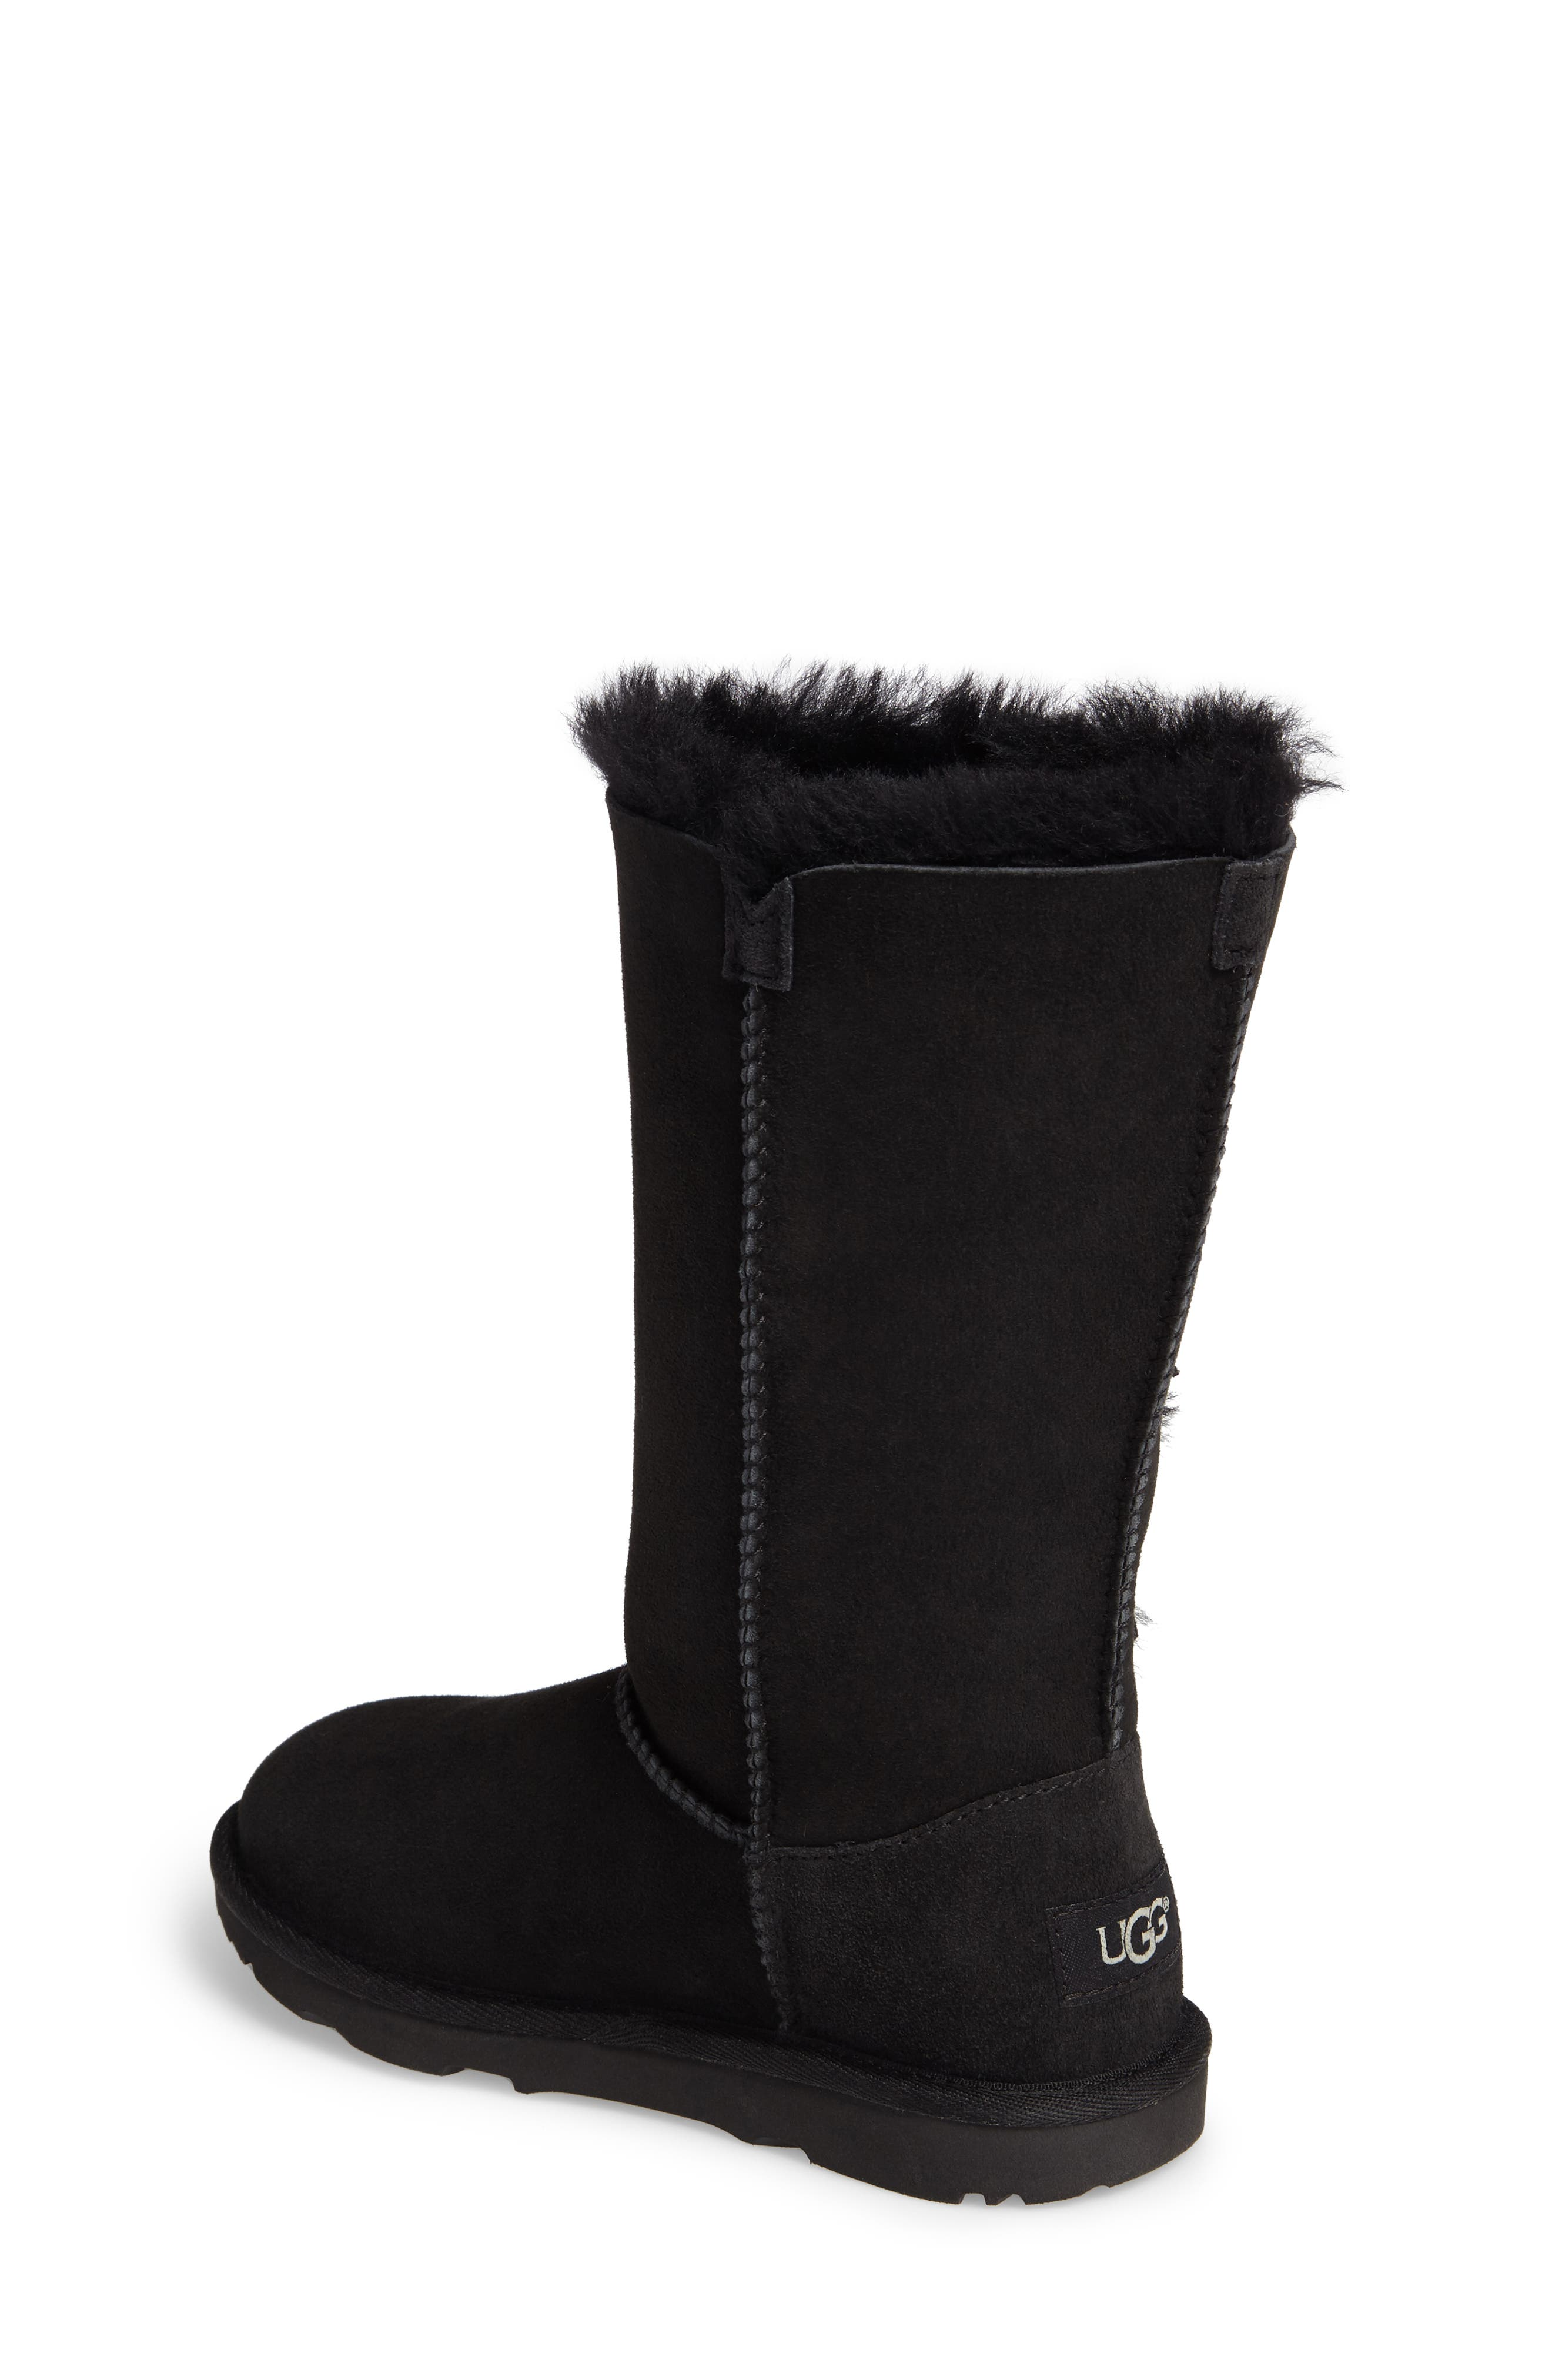 UGG<SUP>®</SUP>, Bailey Button Triplet II Genuine Shearling Boot, Alternate thumbnail 2, color, BLACK SUEDE